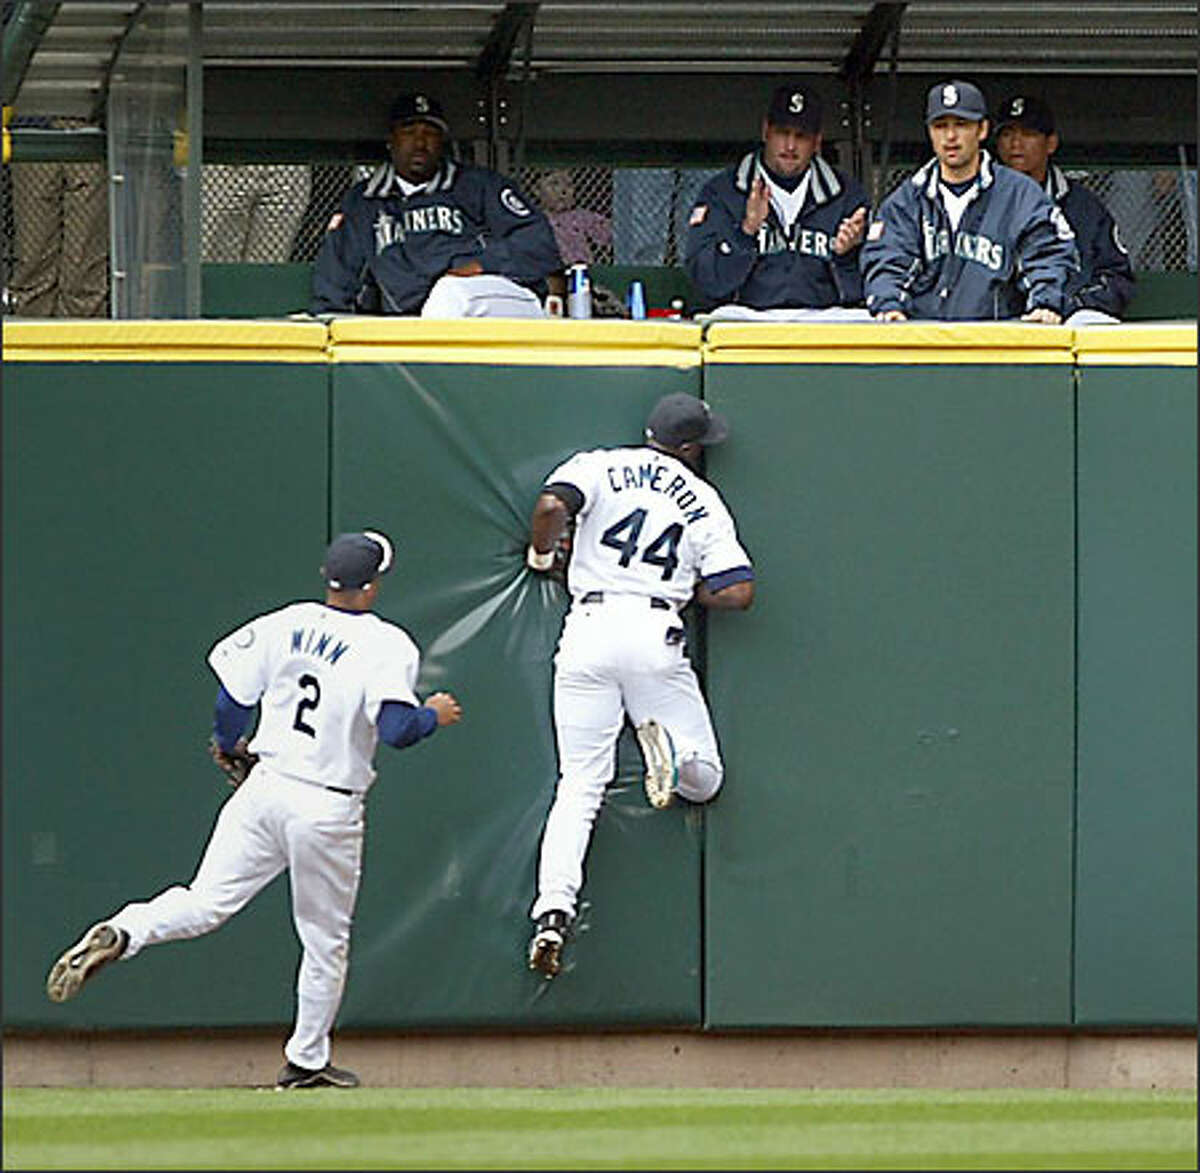 Mike Cameron hits the wall after making a nice catch of a fly ball off the bat of Anaheim's Benji Molina.